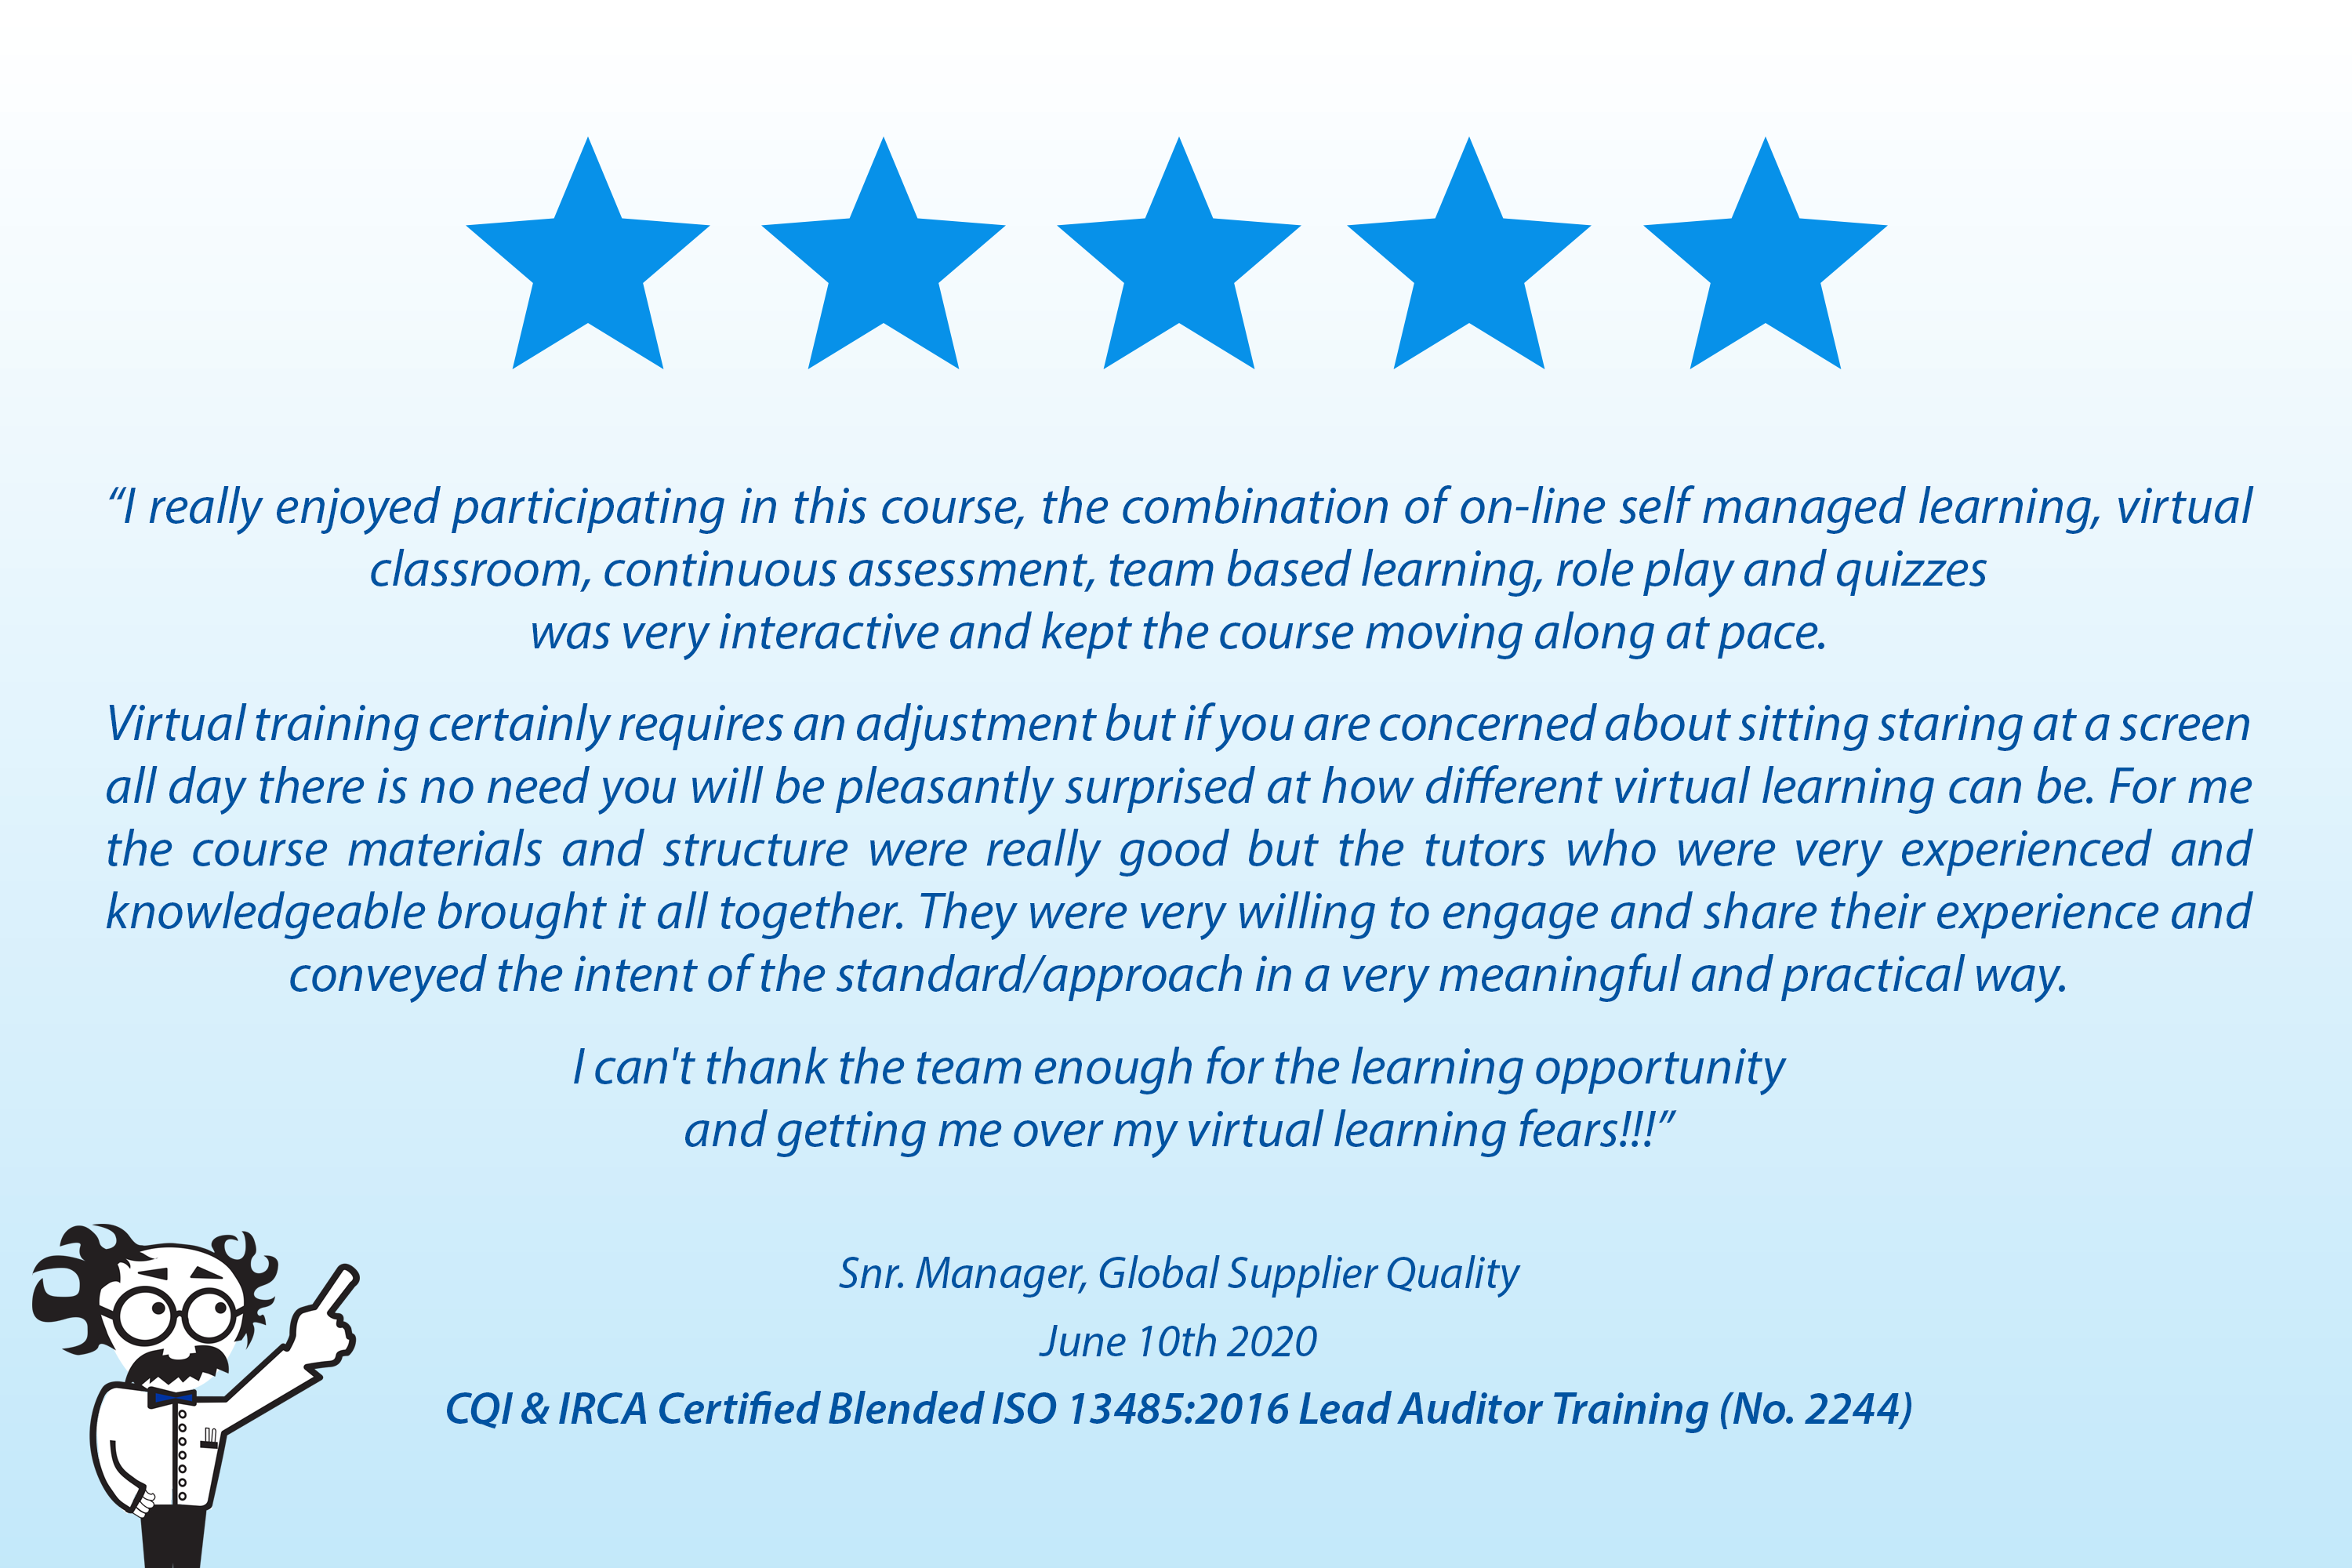 Wonderful Customer Review of Online & Virtual Training